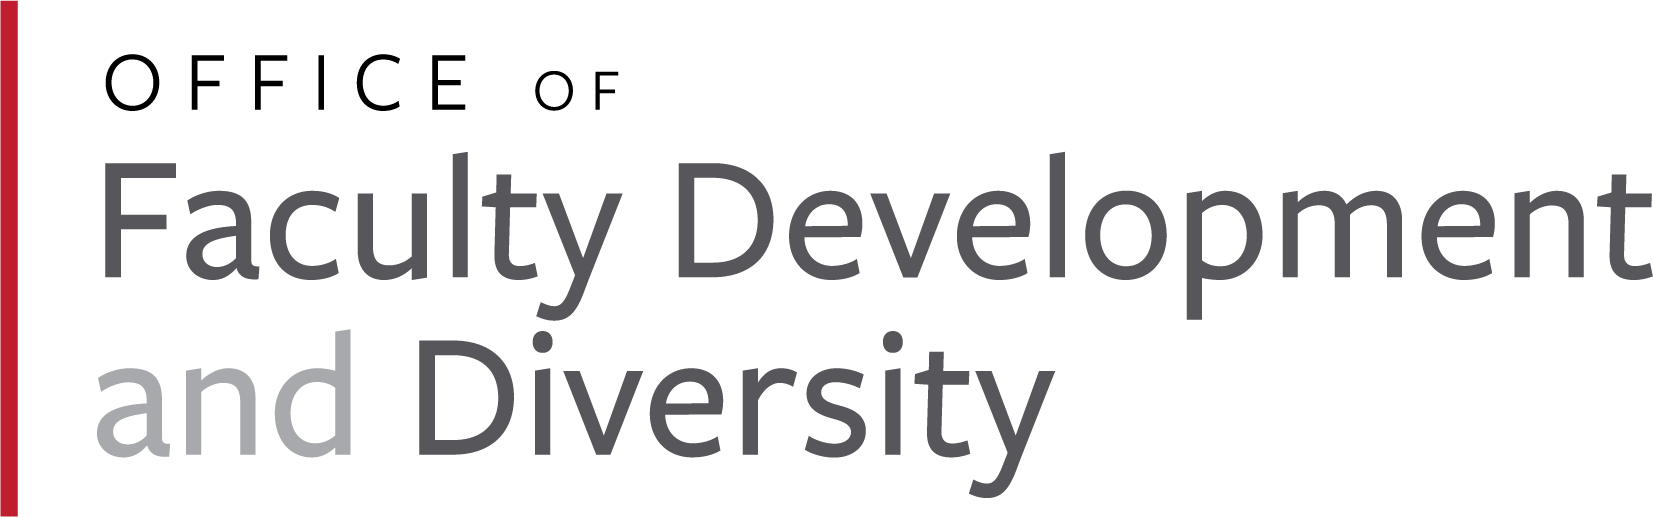 Office of Faculty Development and Diversity